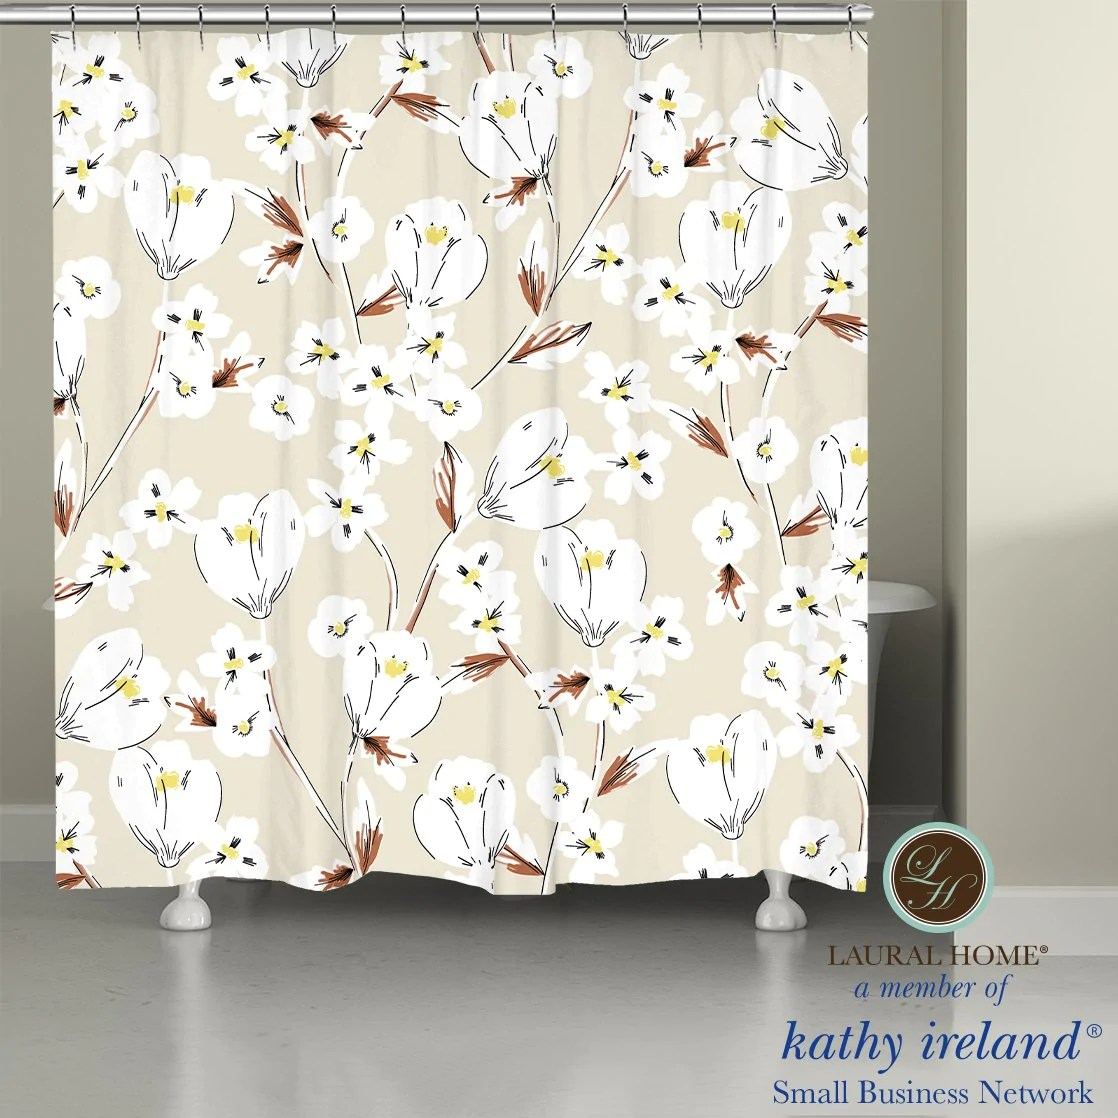 shower curtains laural home